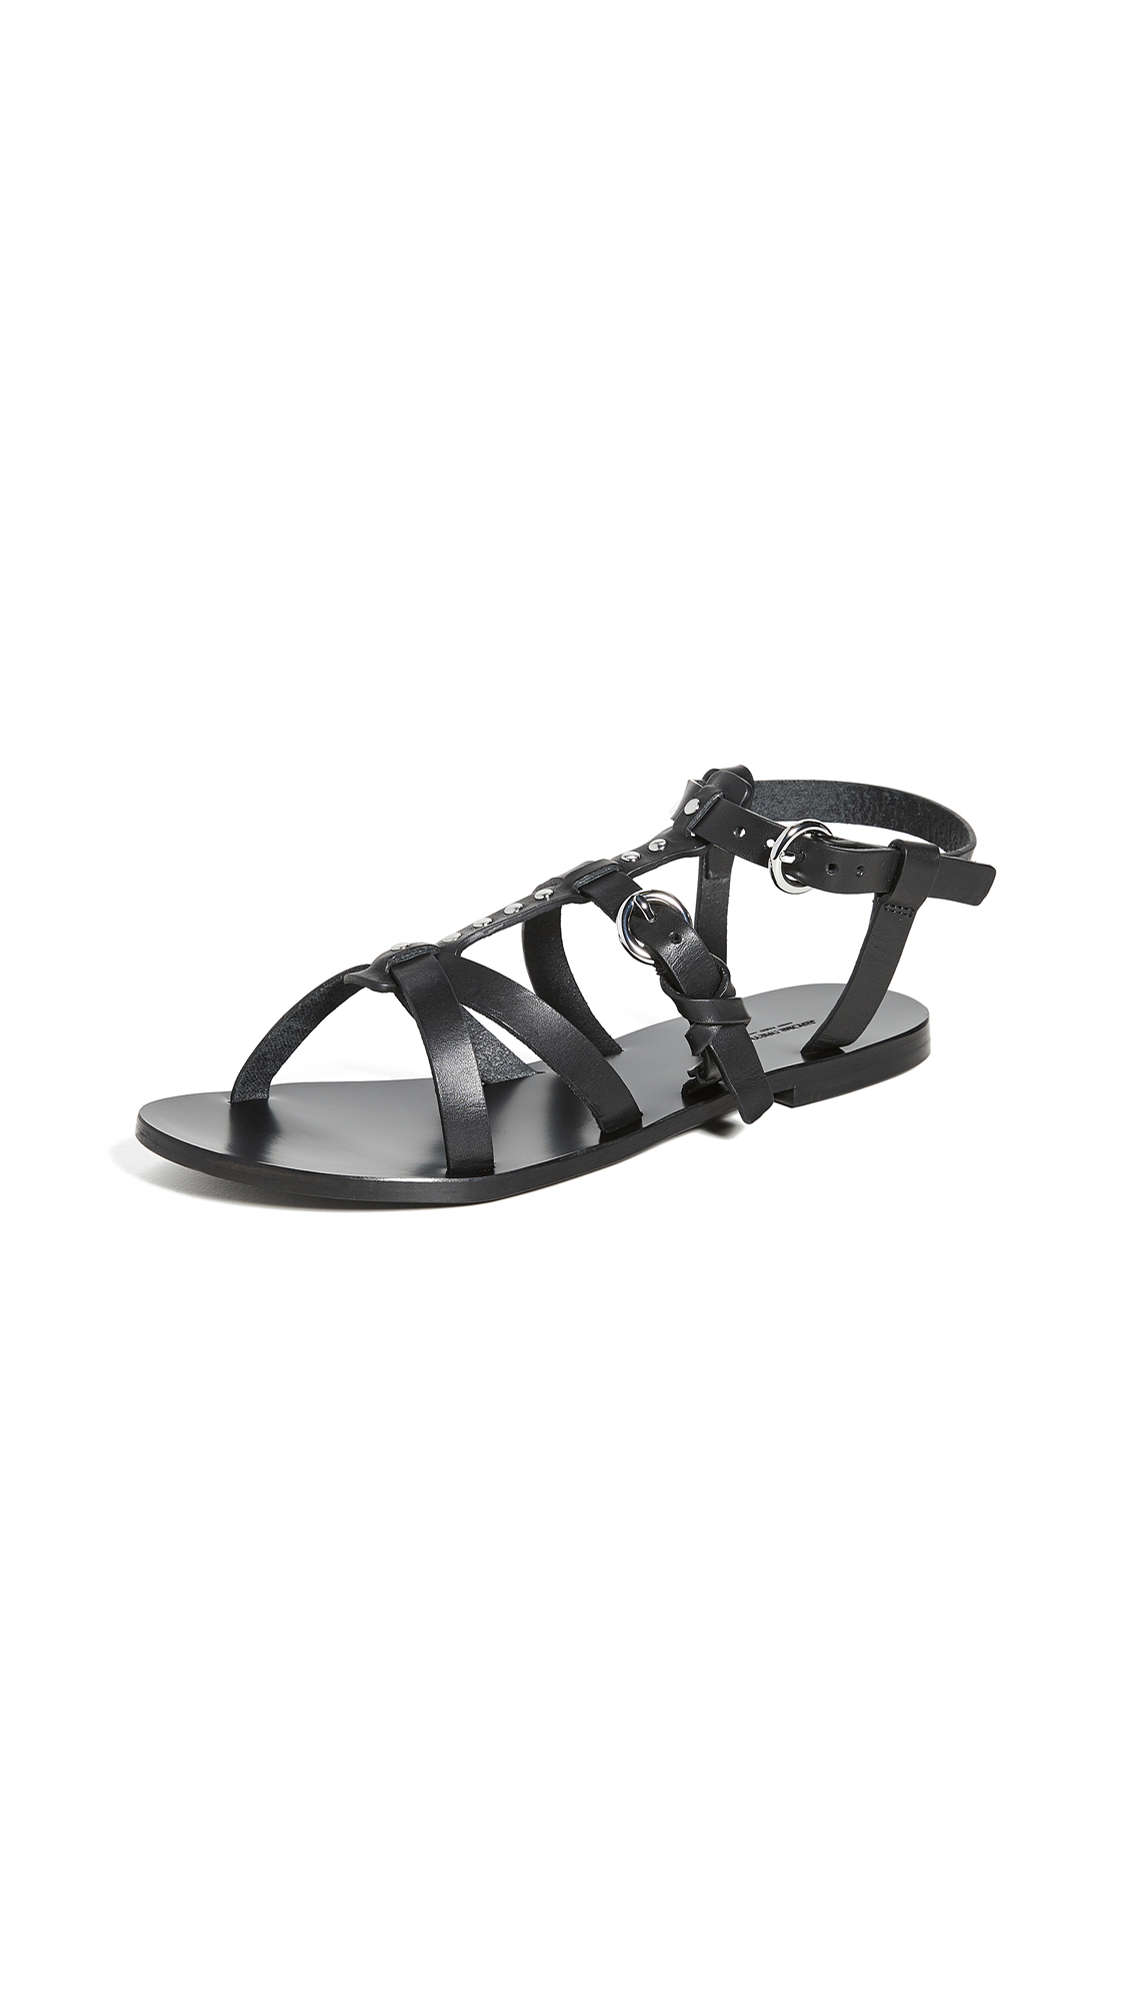 Buy Jerome Dreyfuss Ulla Sandals online, shop Jerome Dreyfuss